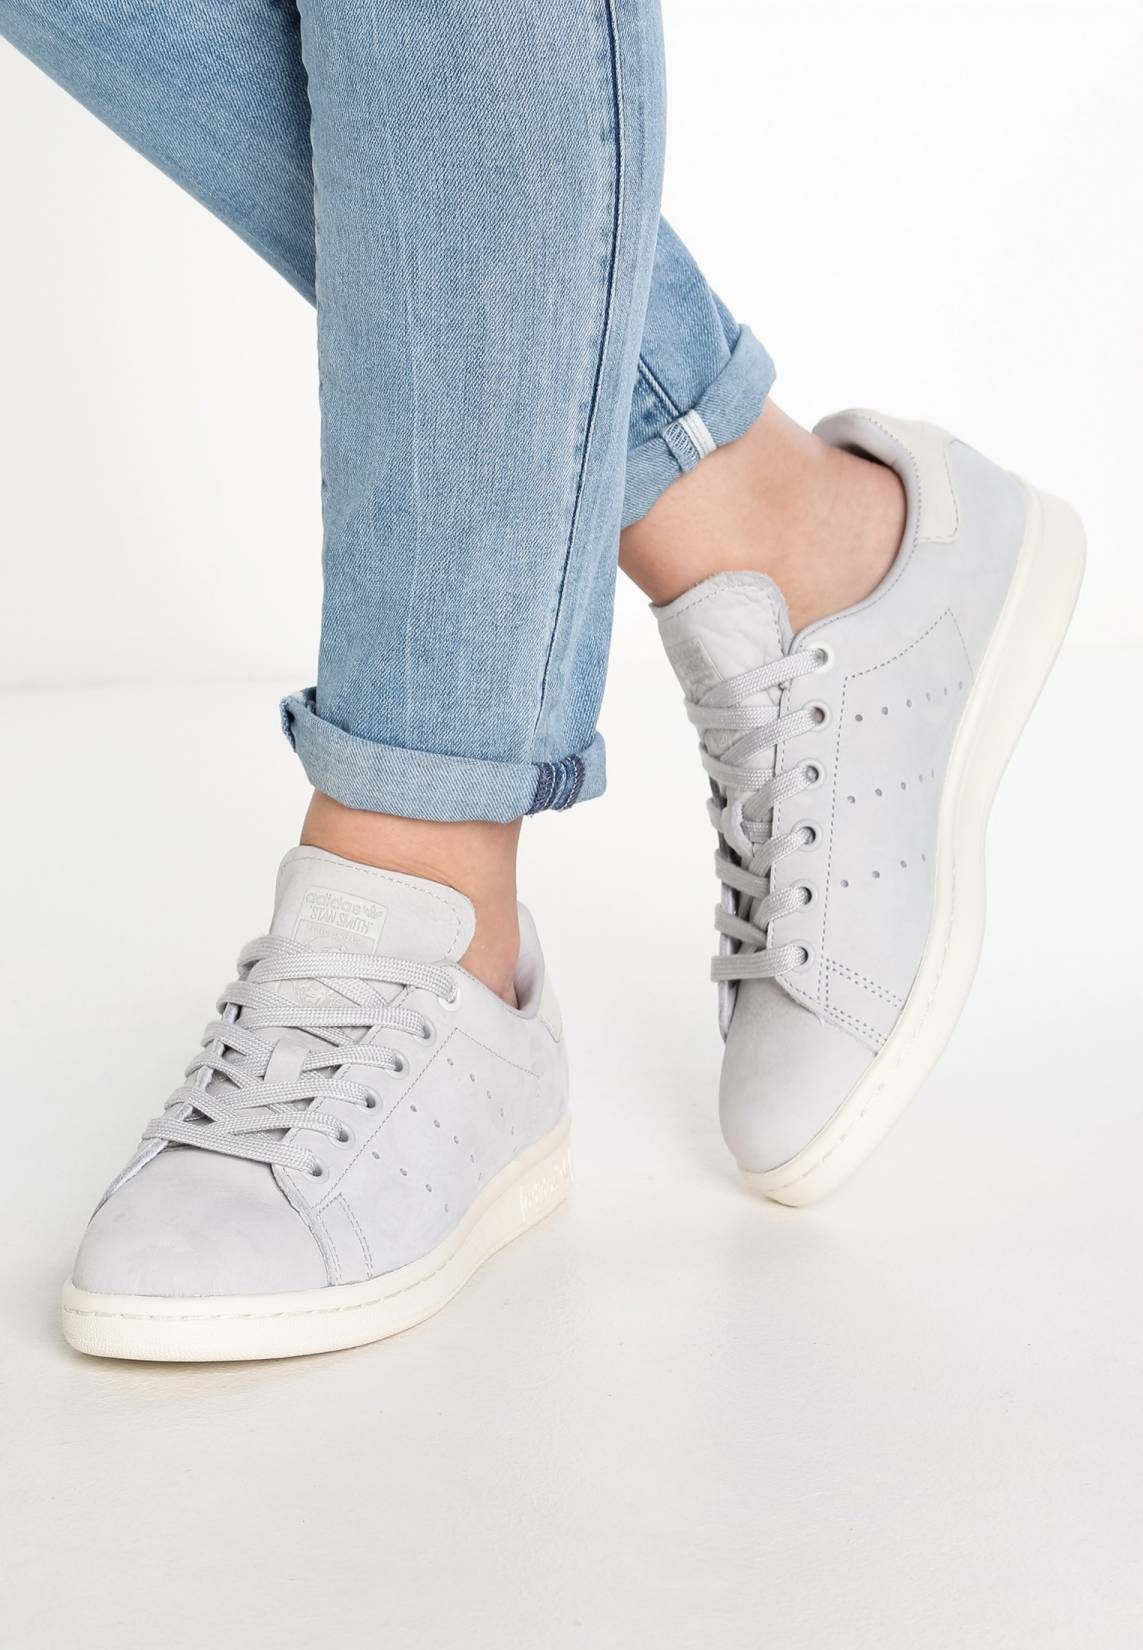 Capilares Aumentar Marketing de motores de búsqueda  adidas Originals. STAN SMITH - Trainers - light solid grey/white vapour.  Care instructions:treat with a suitable p… | Nike dunks, Nike dunk low, Stan  smith sneakers